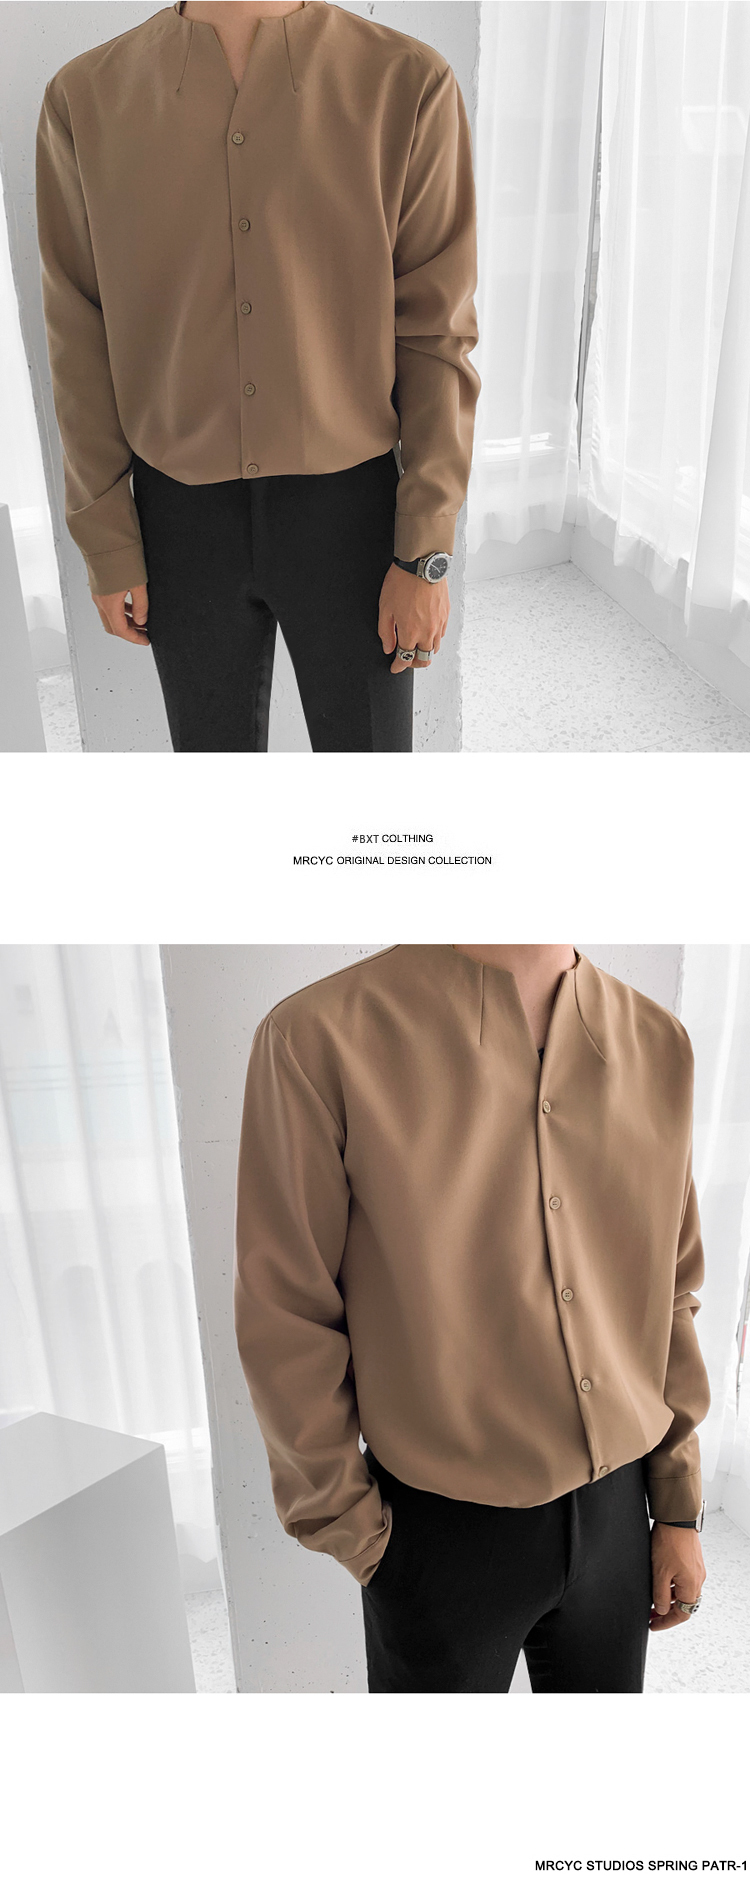 H1e65f2b87ded49f2becc24b3729af8e1B IEFB /men's wear 2020 autumn casual stand collar solid color shirt for male Personality Trend Handsome Long Sleeve s 9Y899